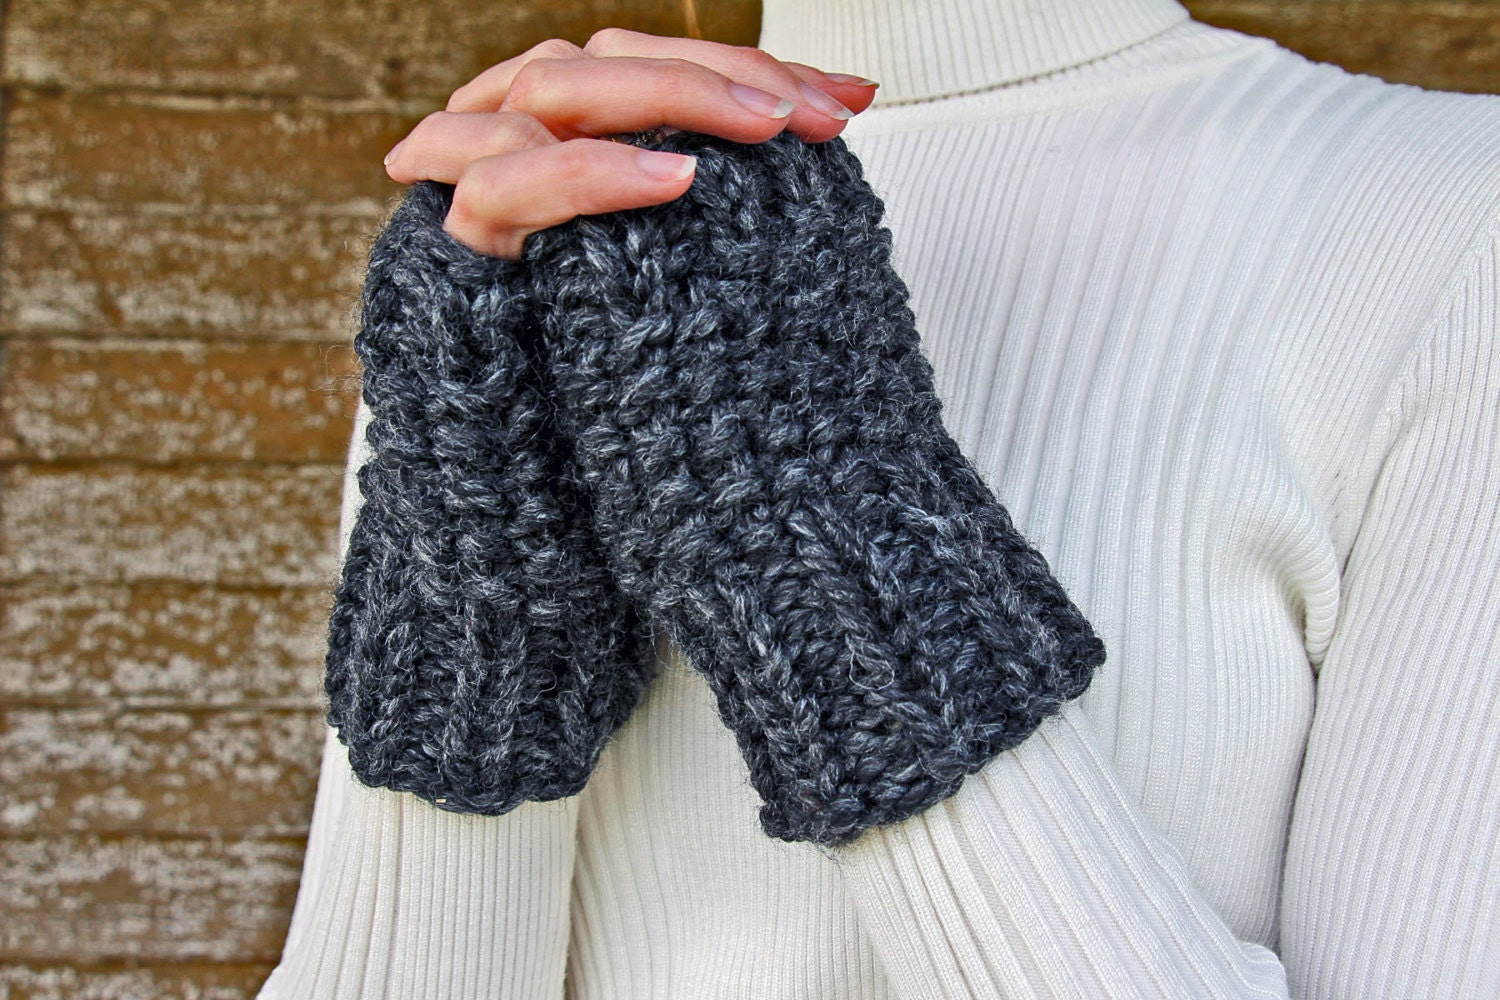 Knit Pattern Gloves Sock Yarn : Fingerless Gloves Knitting Pattern Leftover Yarn Pattern a